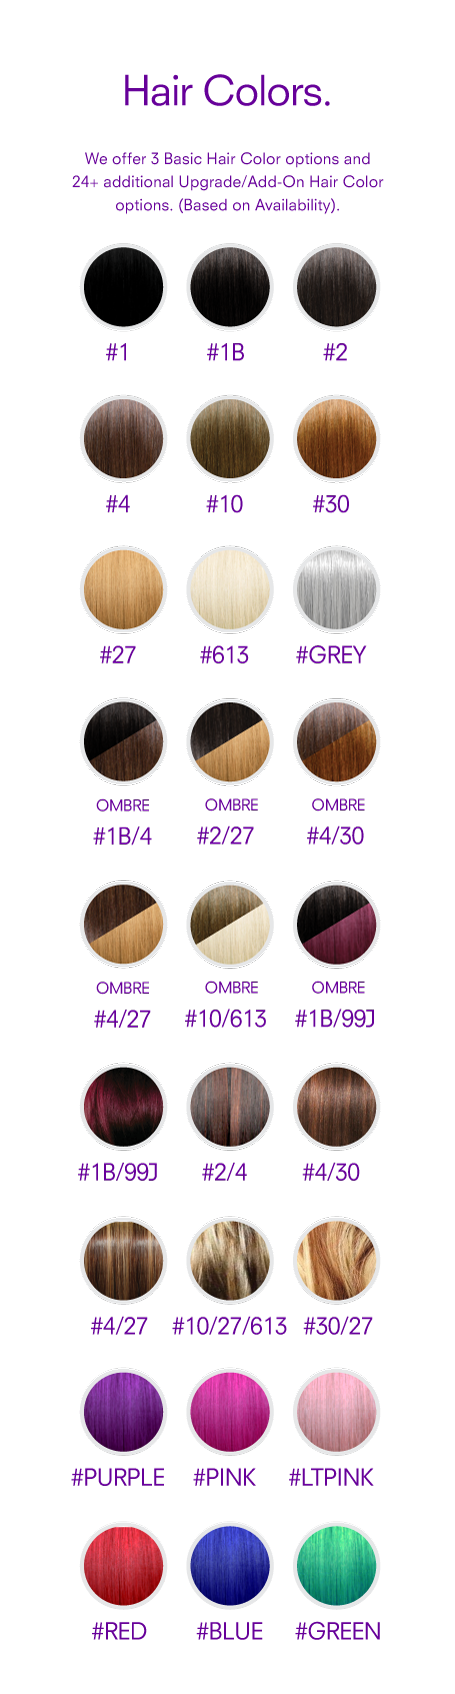 Hair Color: We offer 3 Basic Hair Color options and 24+ additional Upgrade/Add-On Hair Color options. (Based on availability).